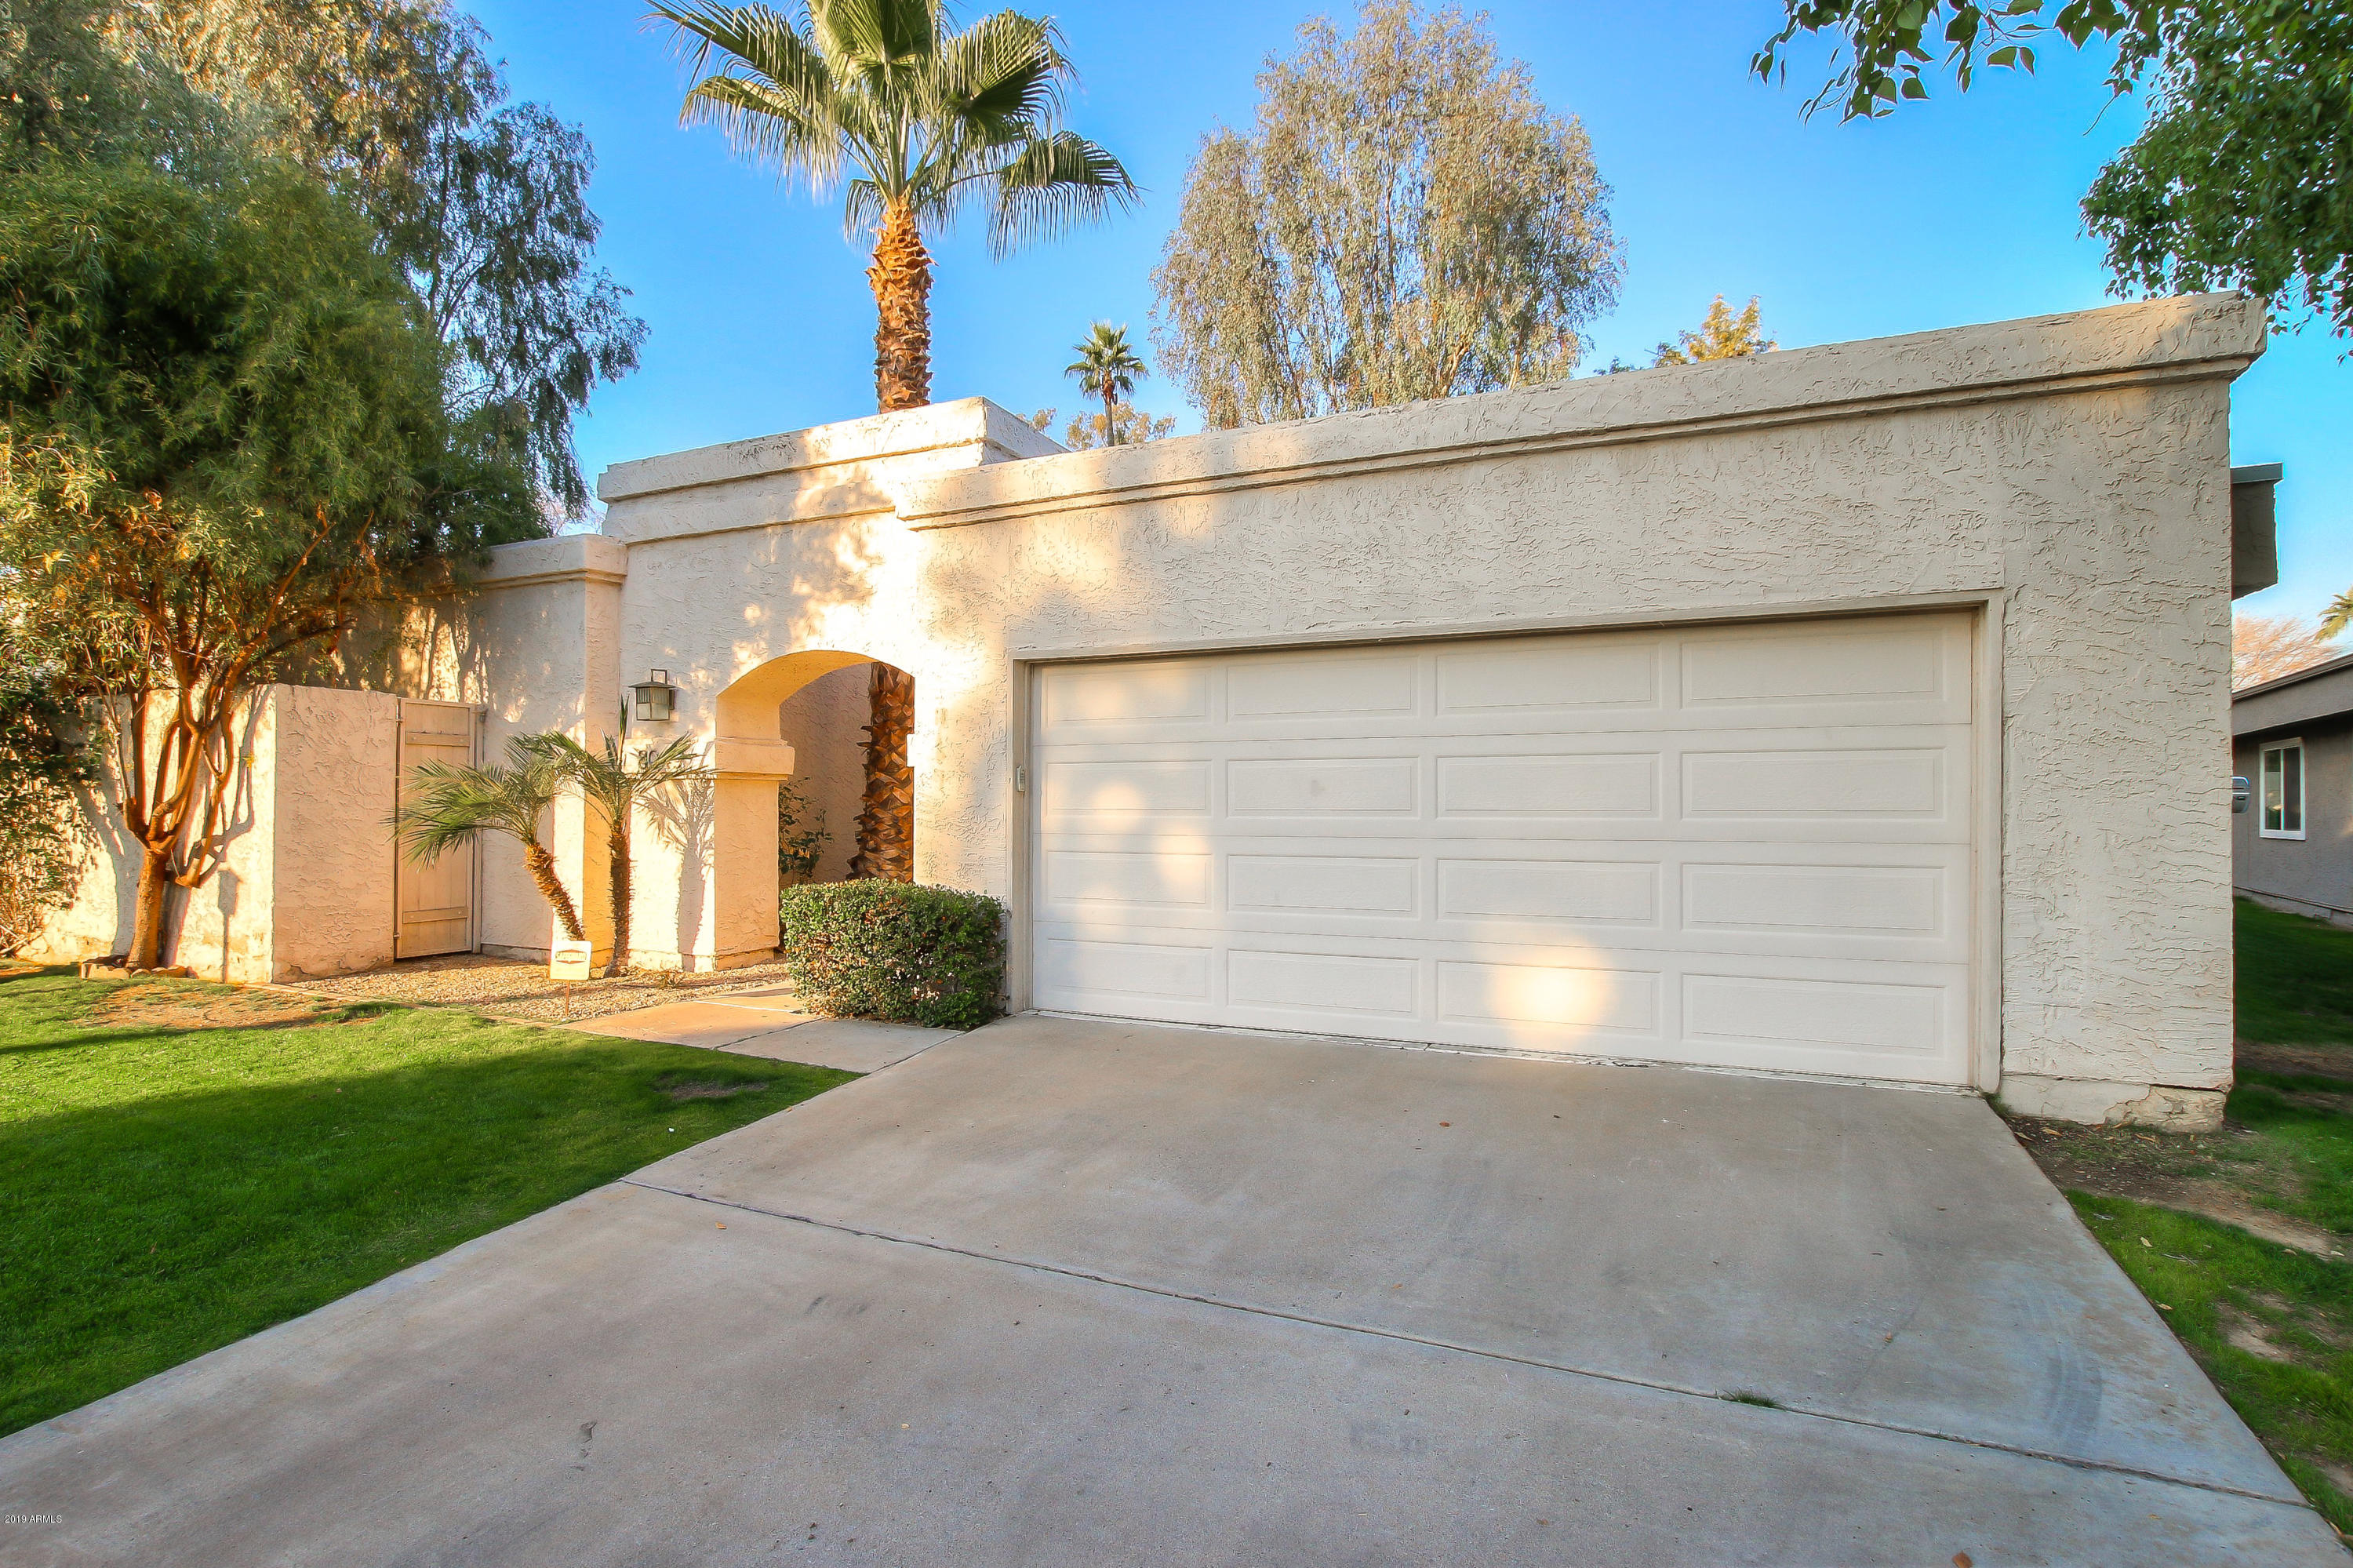 Photo of 8049 N VIA PALMA --, Scottsdale, AZ 85258